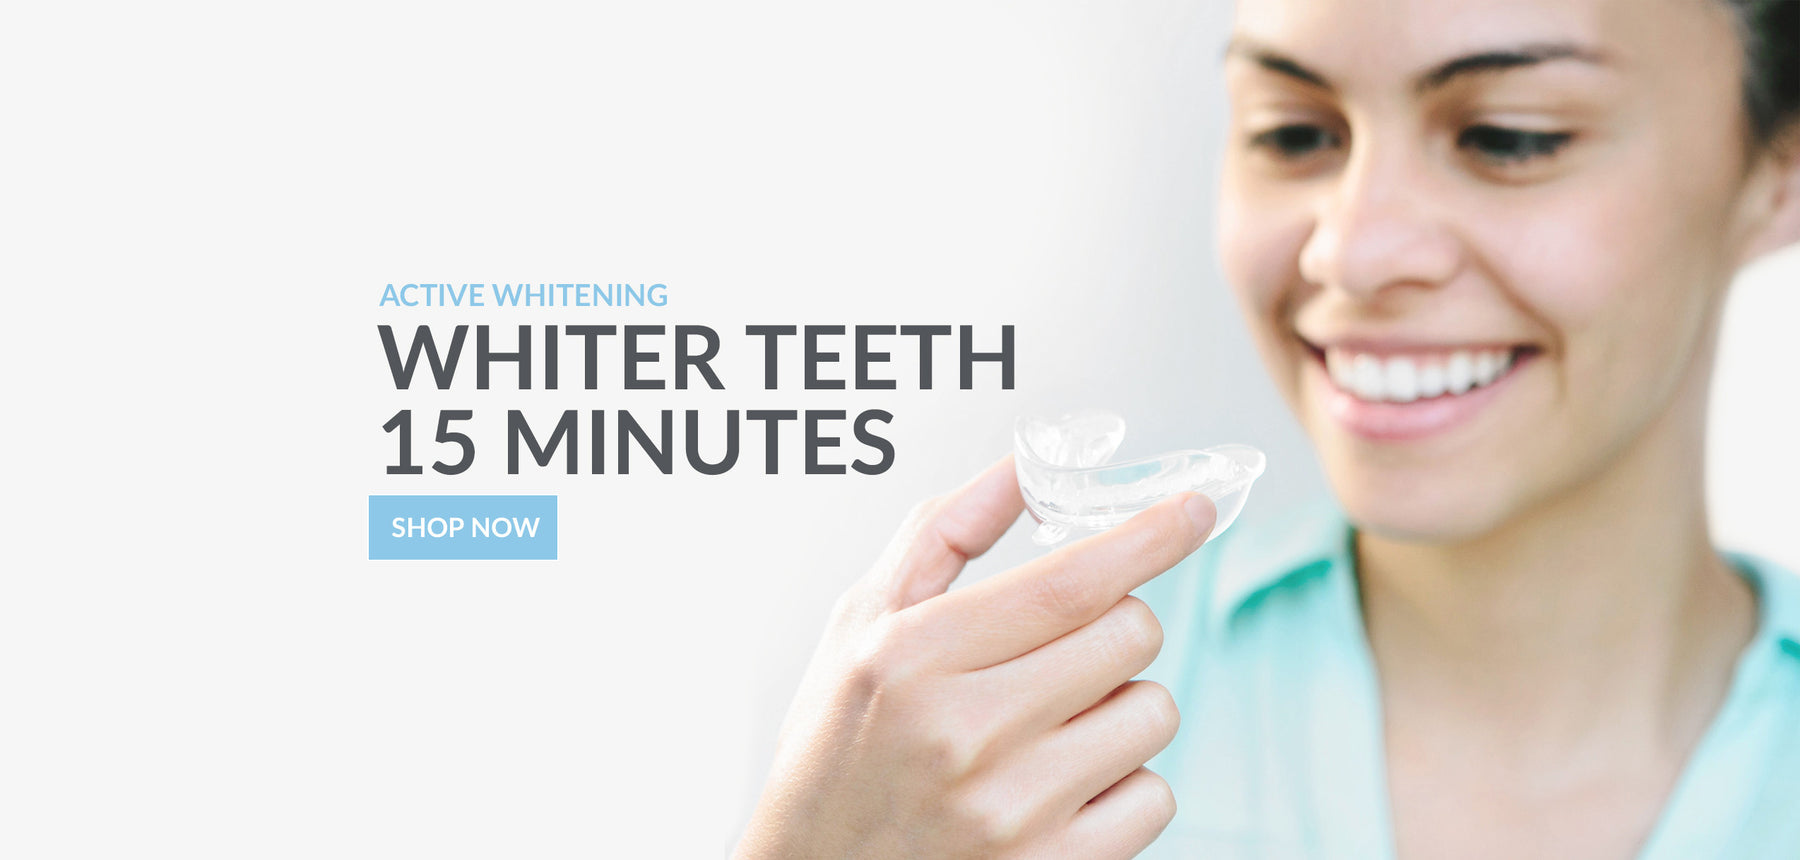 Active Whitening. Whiter teeth is just 15 minutes.